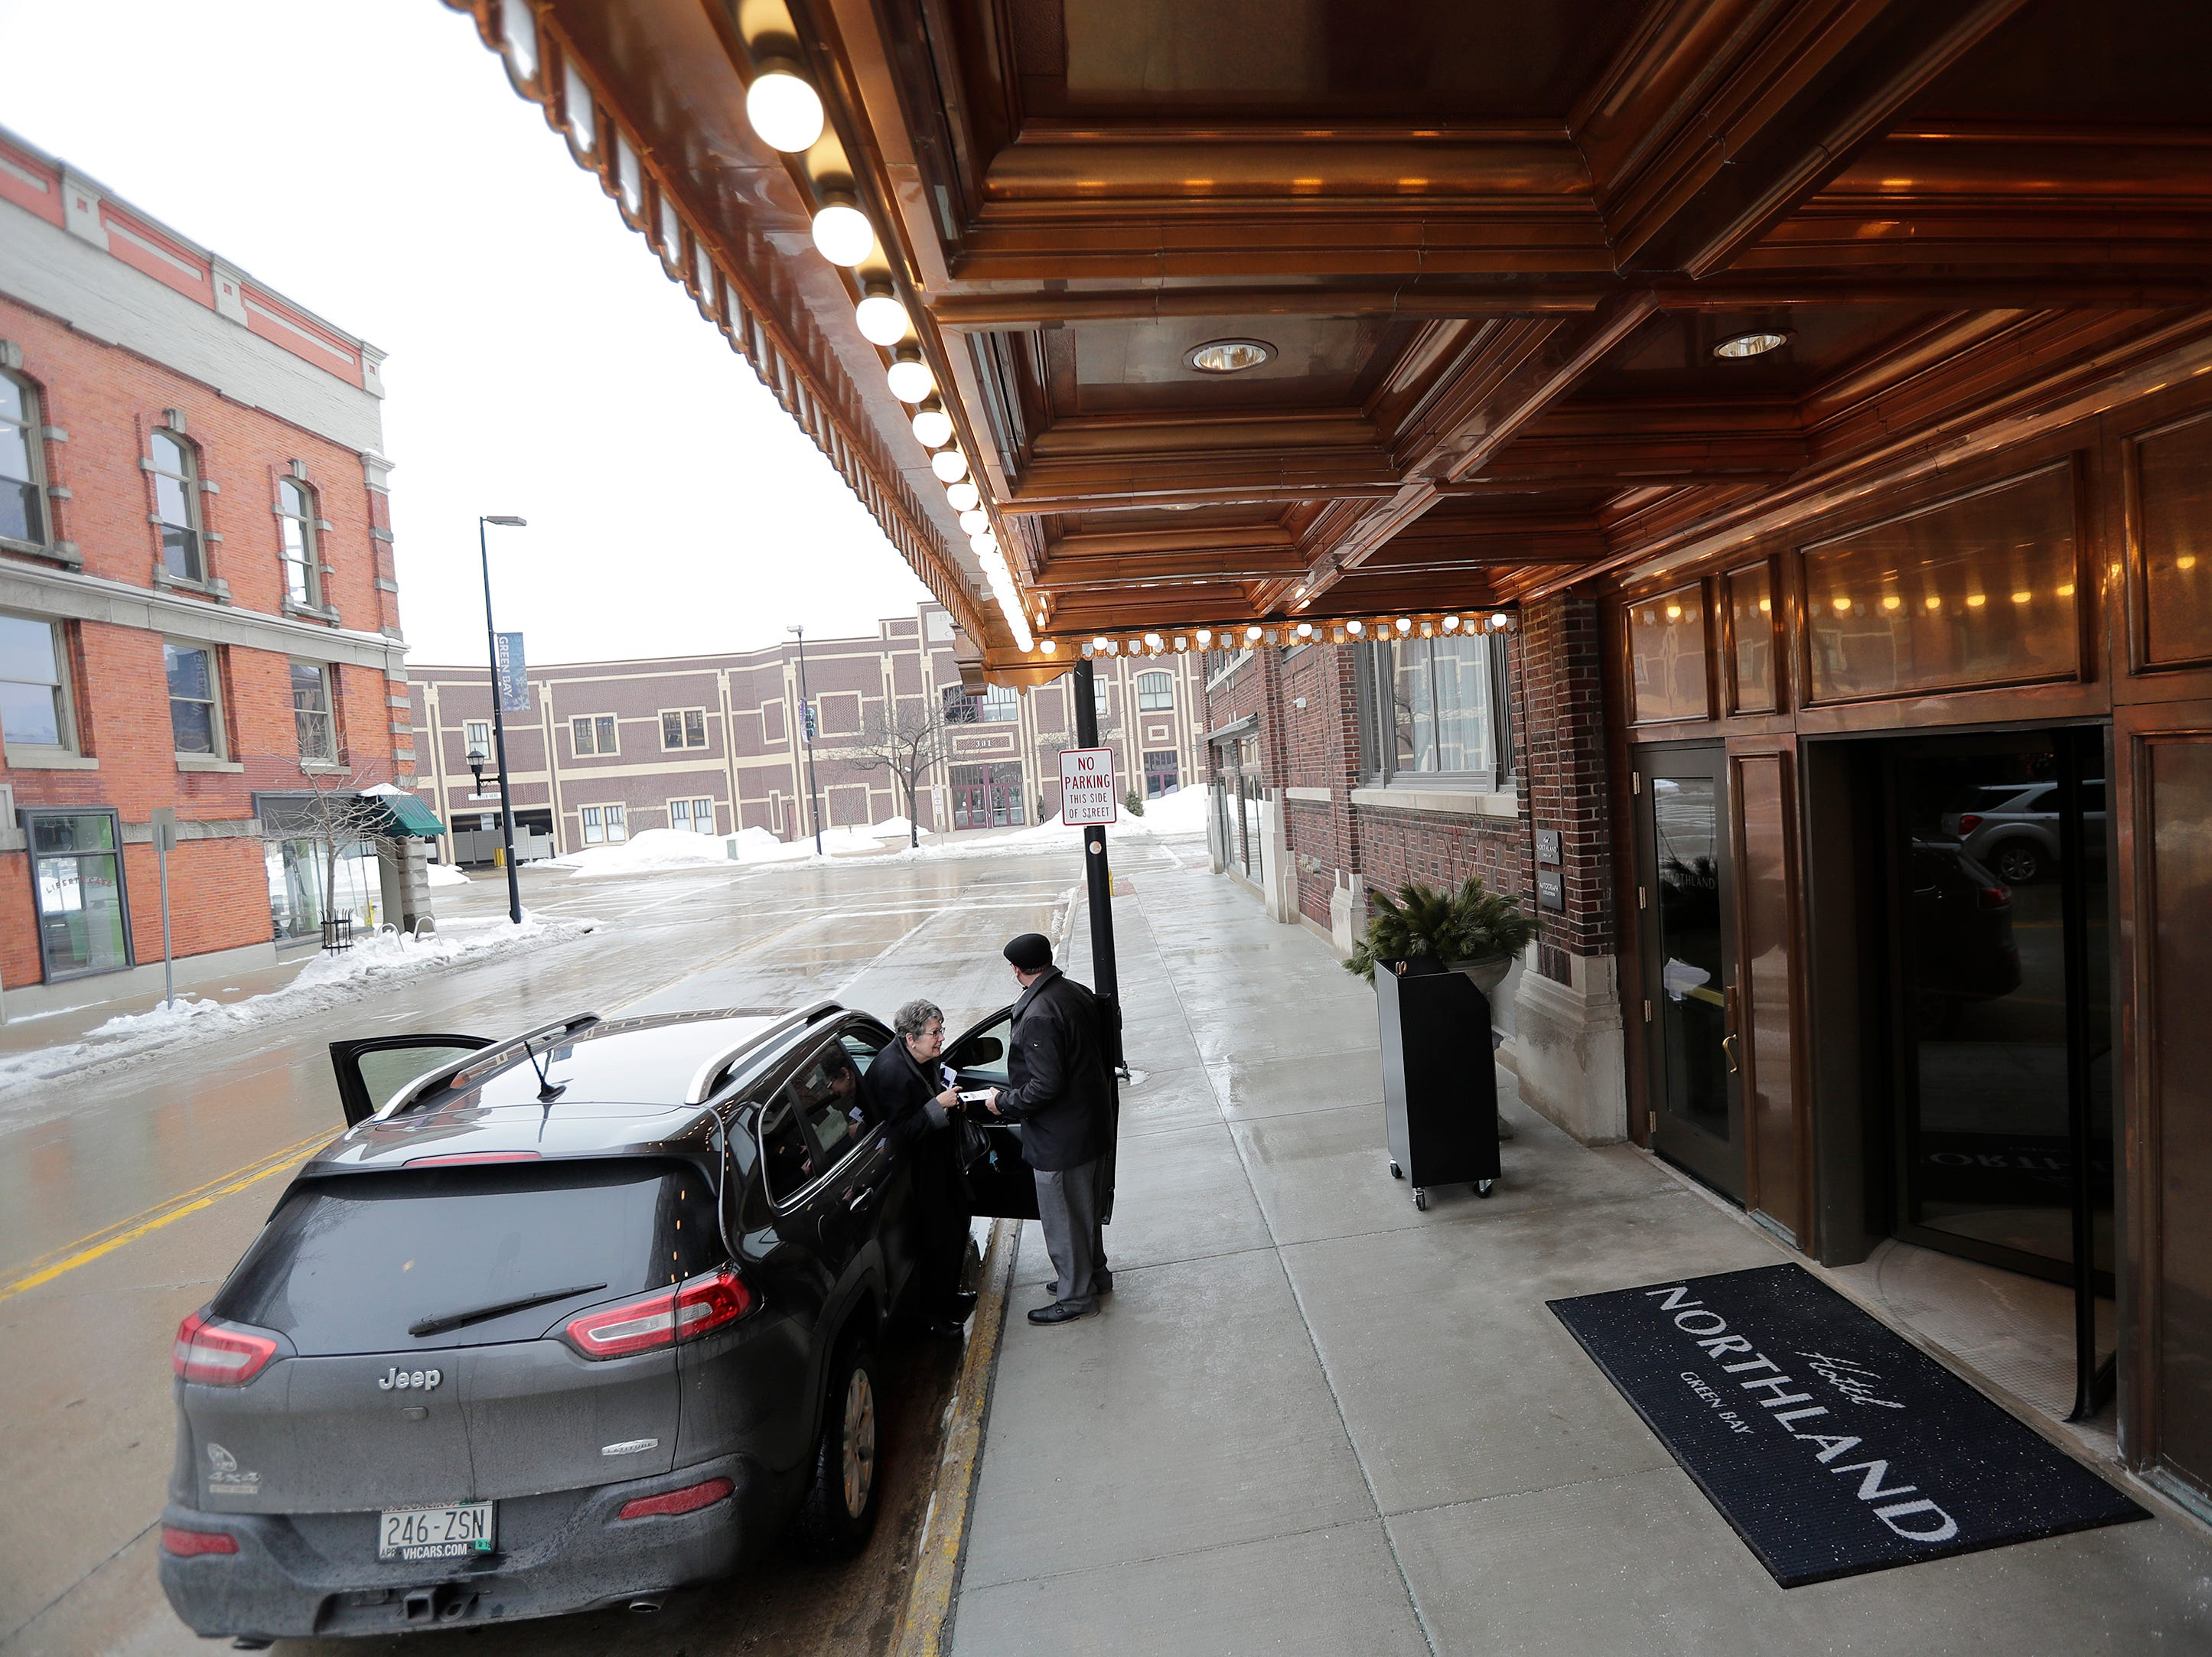 Guests arrive at the valet parking entrance of the Hotel Northland on Thursday, February 14, 2019 in Green Bay, Wis.